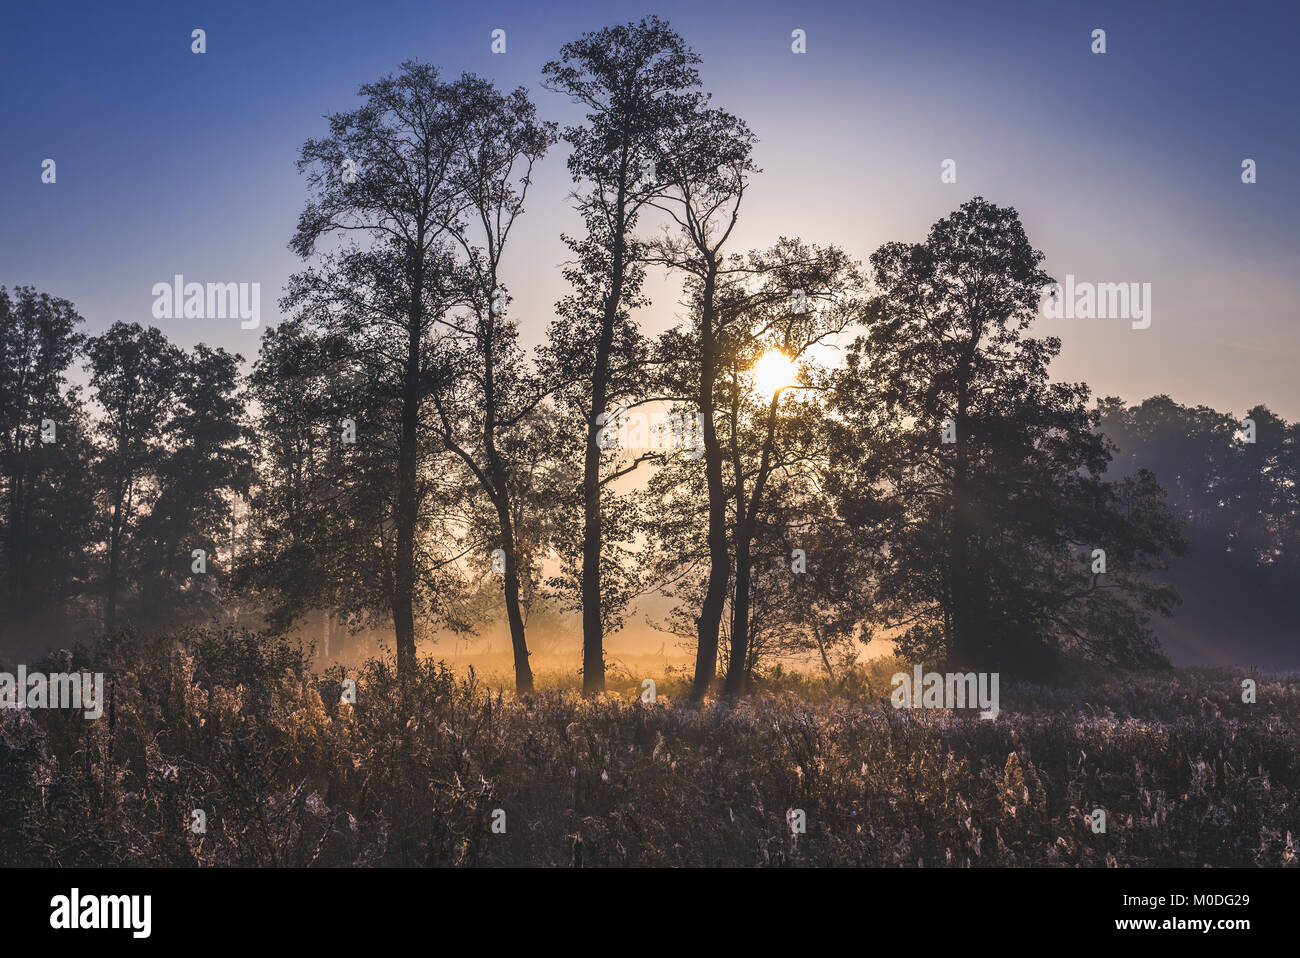 Sunrise in Gorki village, Sochaczew County on the edge of Kampinos Forest, large forests complex in Masovian Voivodeship - Stock Image